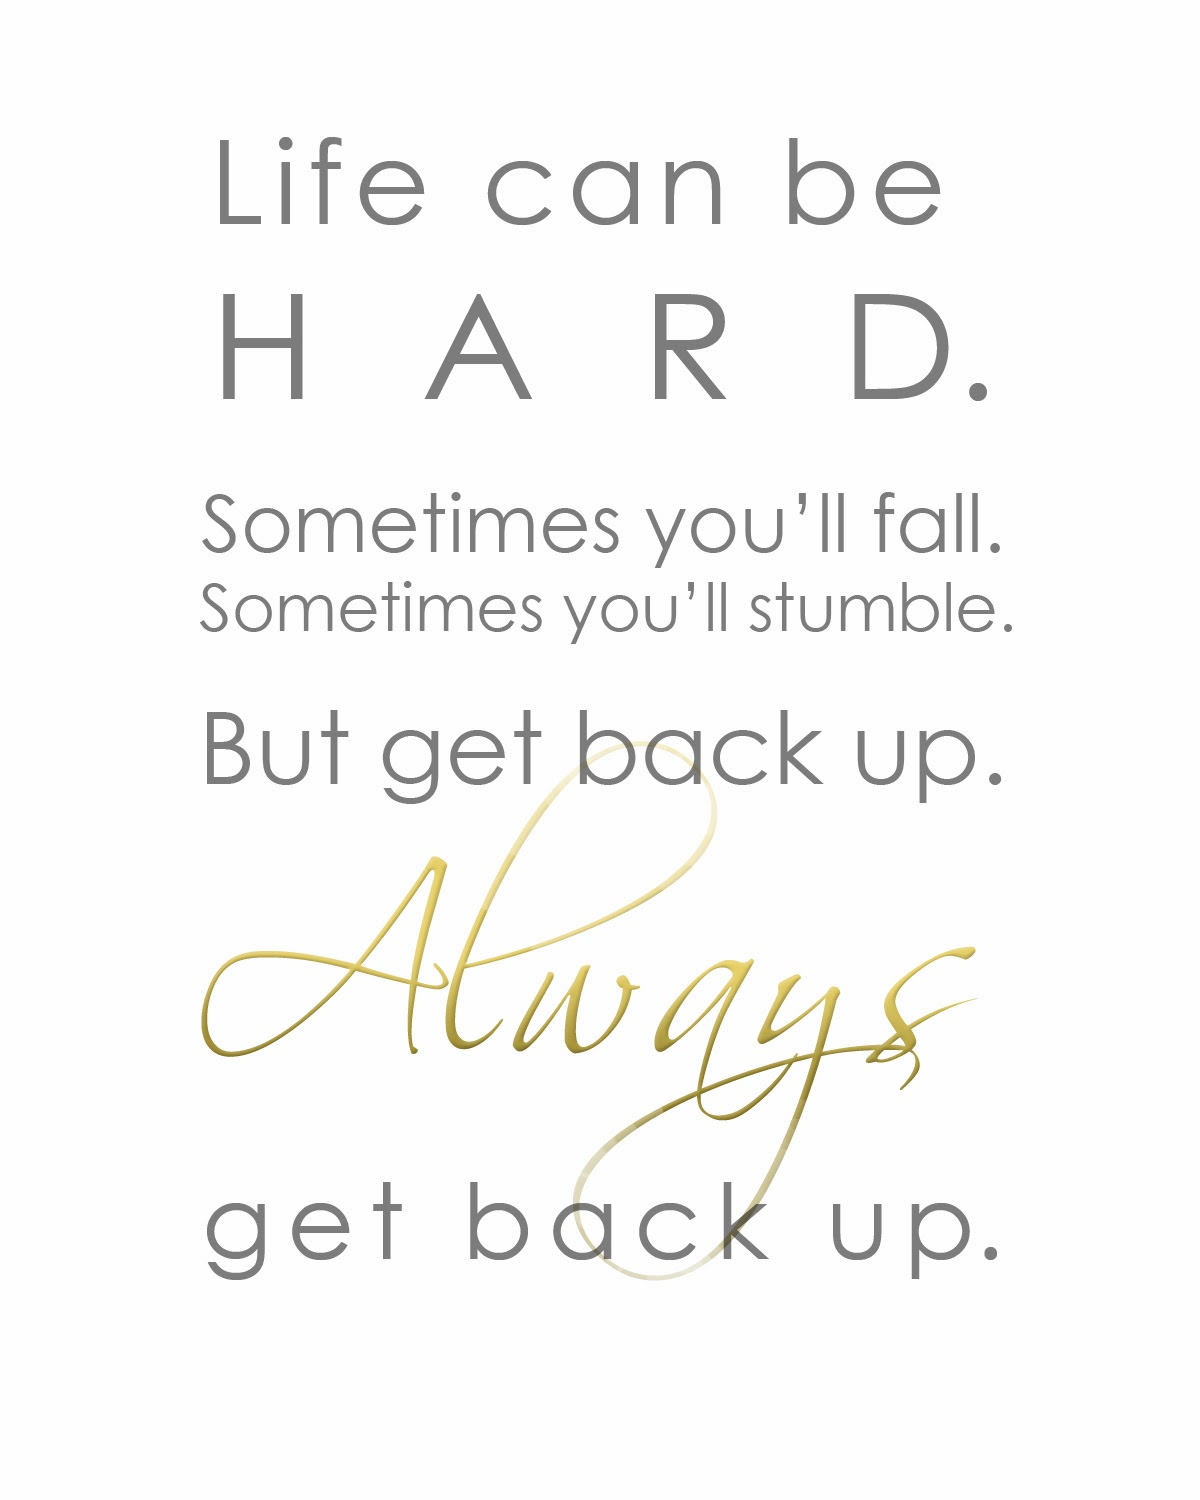 Get Back Up Quotes: The Sprinkles On My Ice Cream: Get Back Up